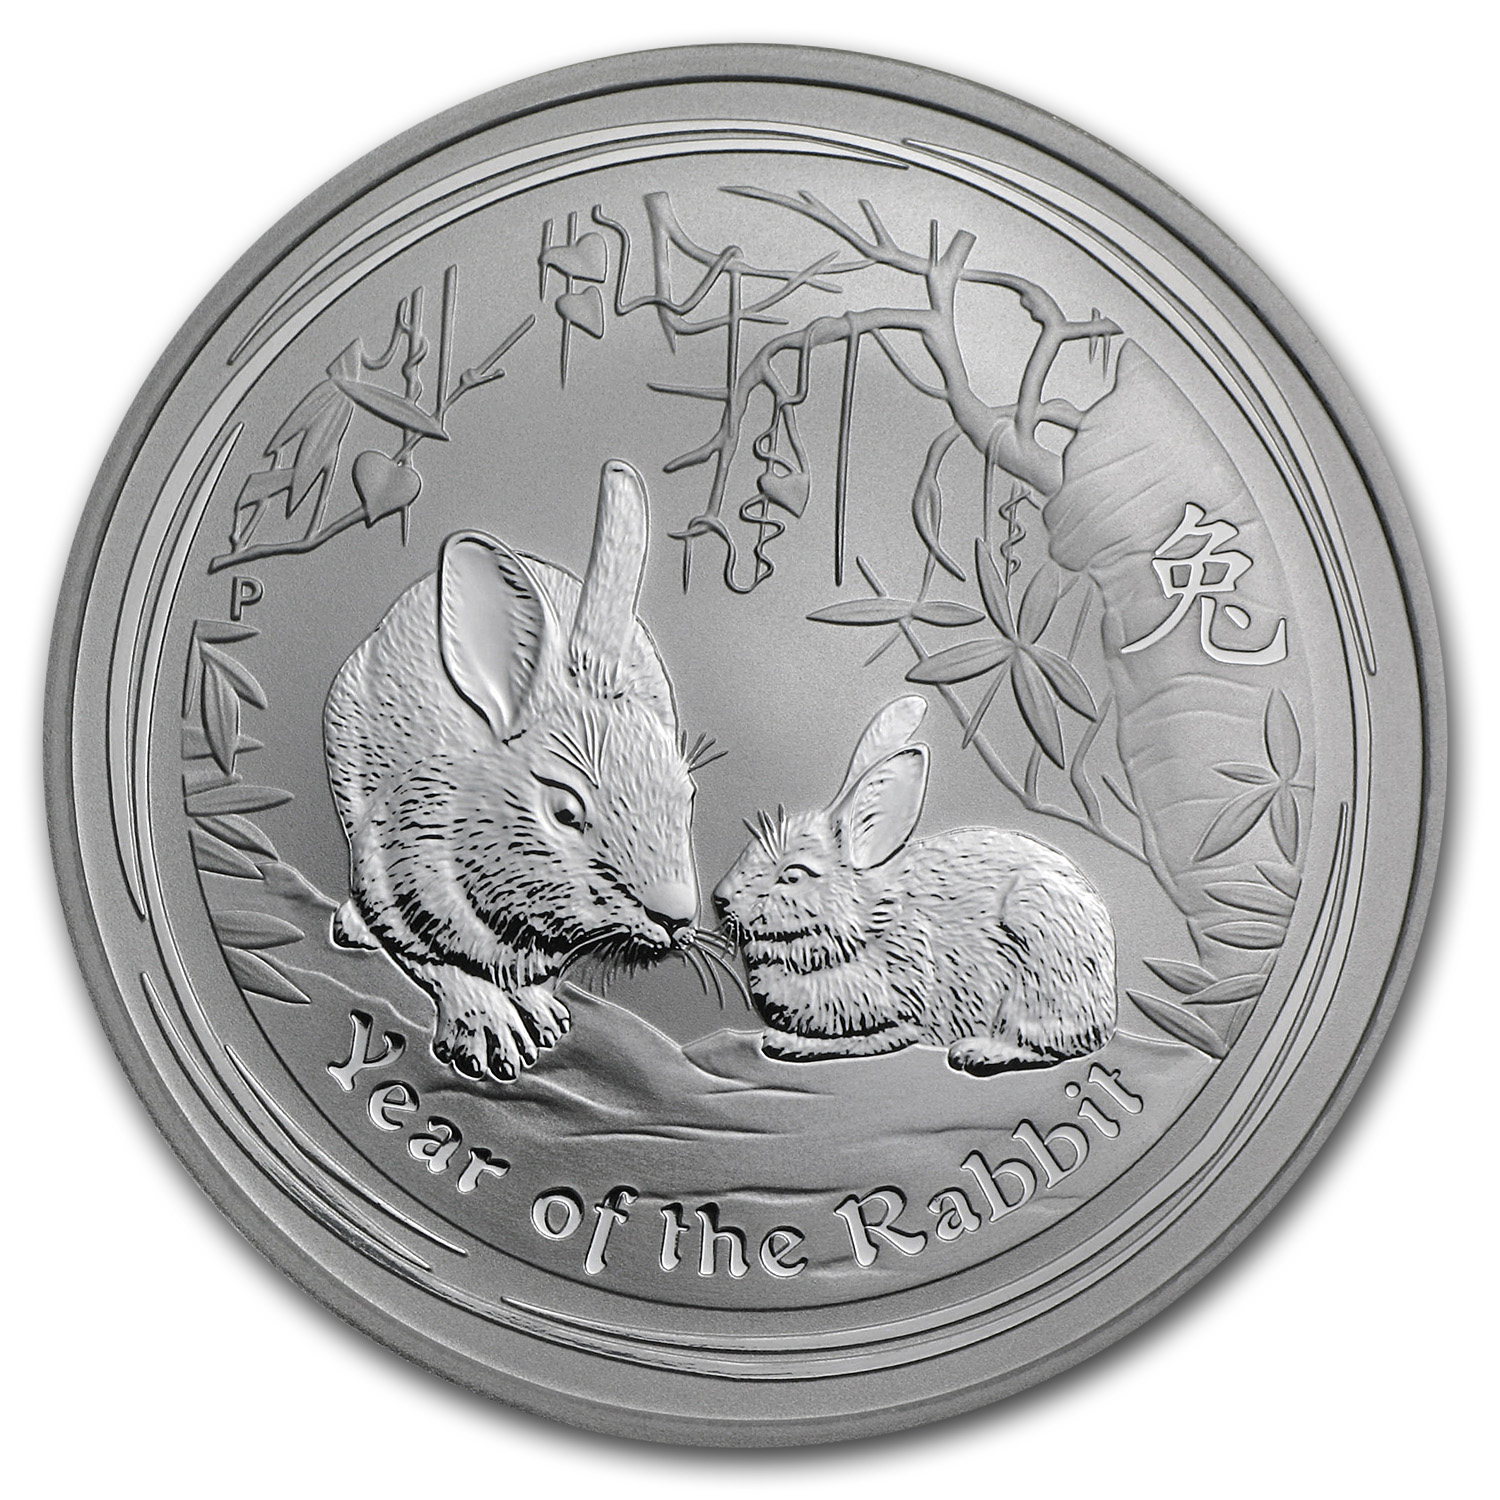 2011 1 oz Silver Australian Year of the Rabbit BU